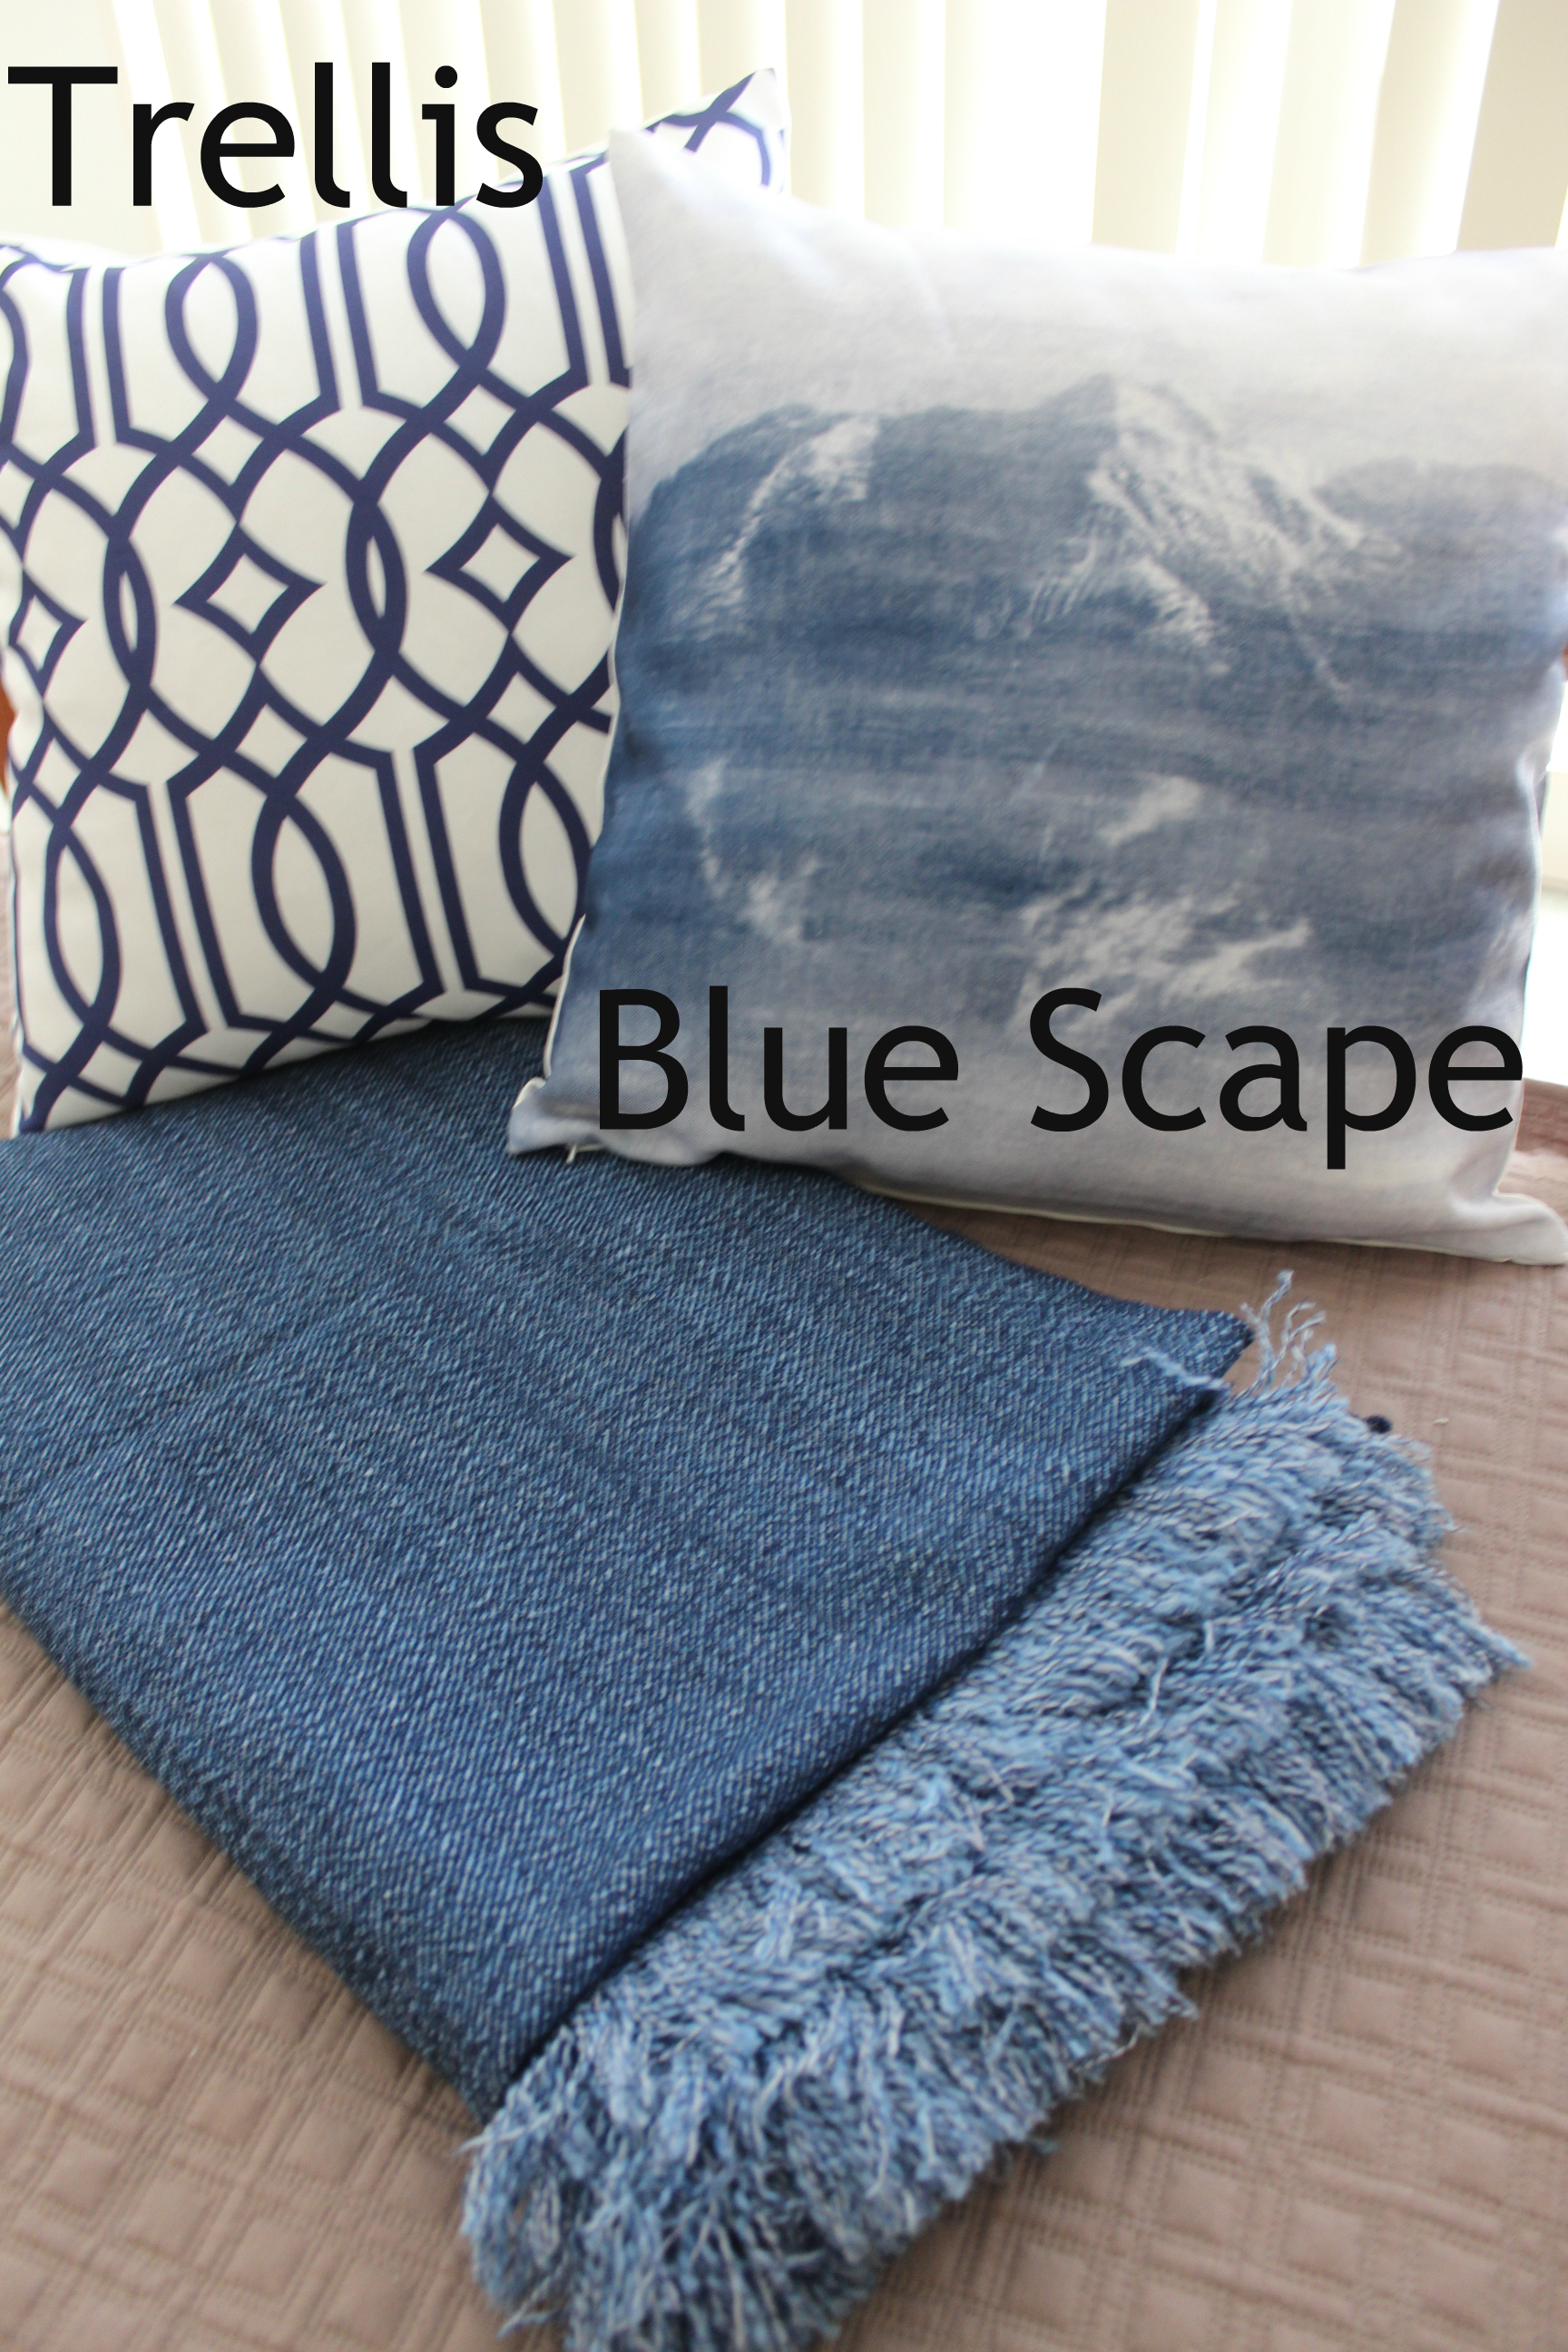 Blue Cotton Throw Denim Throw Bed or Sofa Rug Soft Throw Blanket